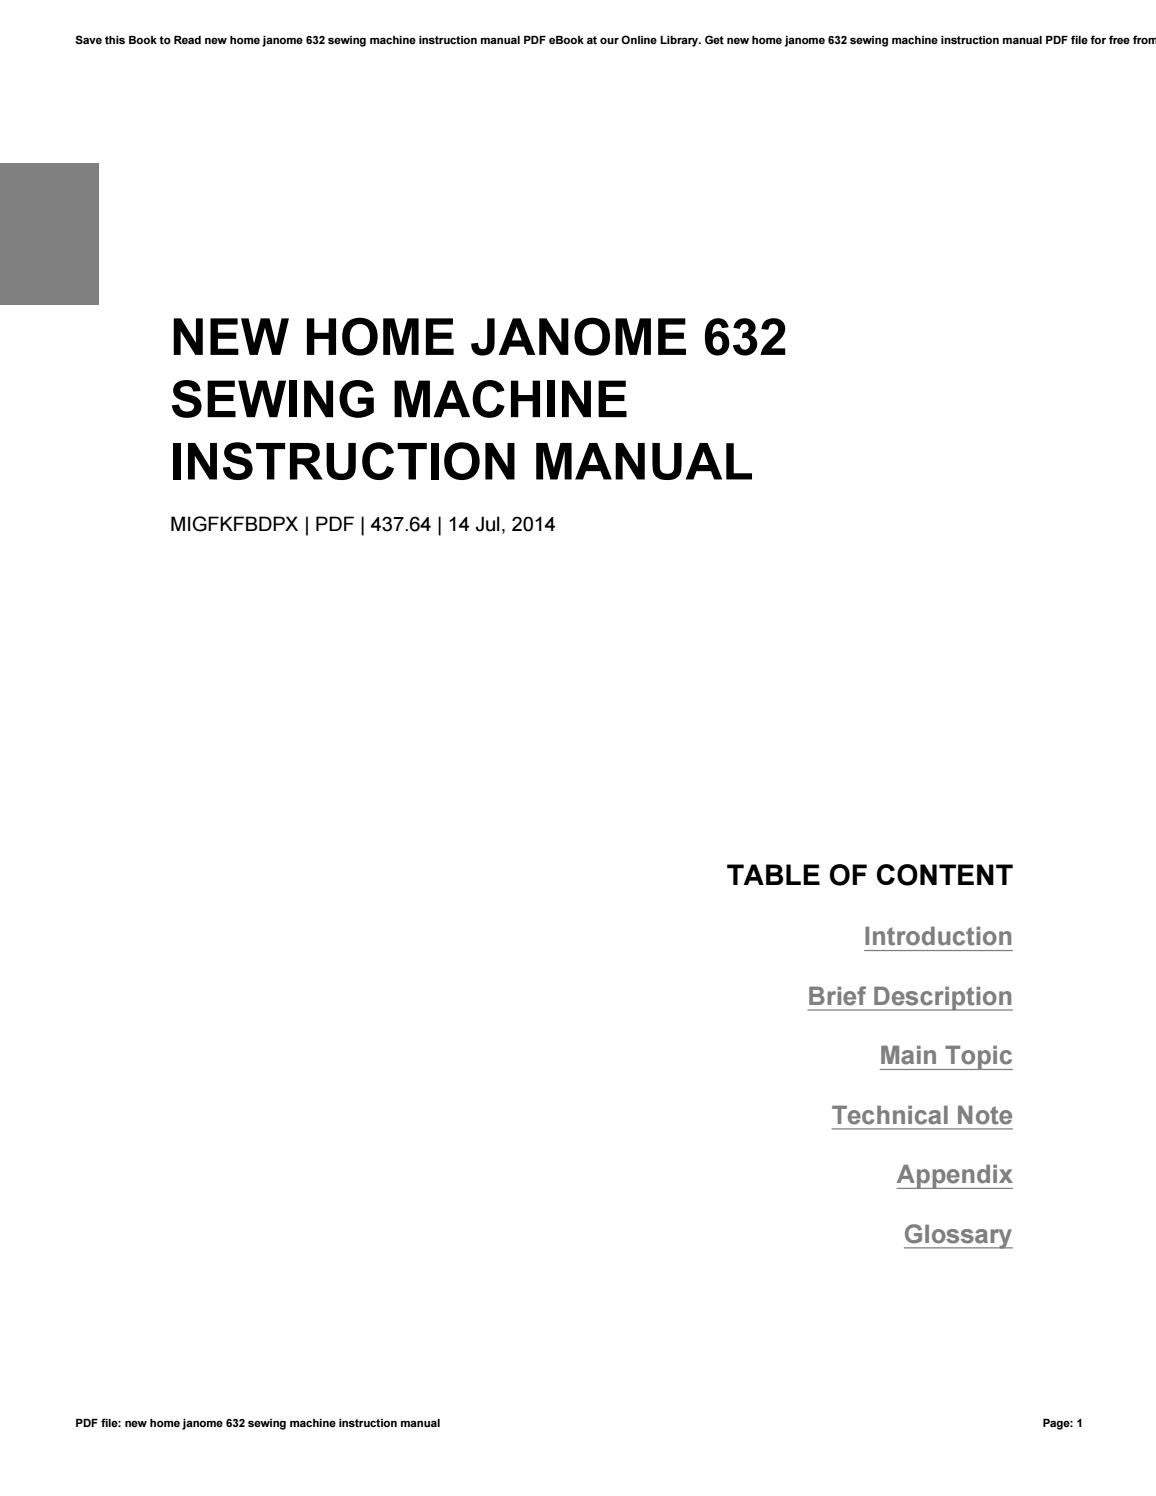 New home janome 632 sewing machine instruction manual by BrittanyJames1826  - issuu